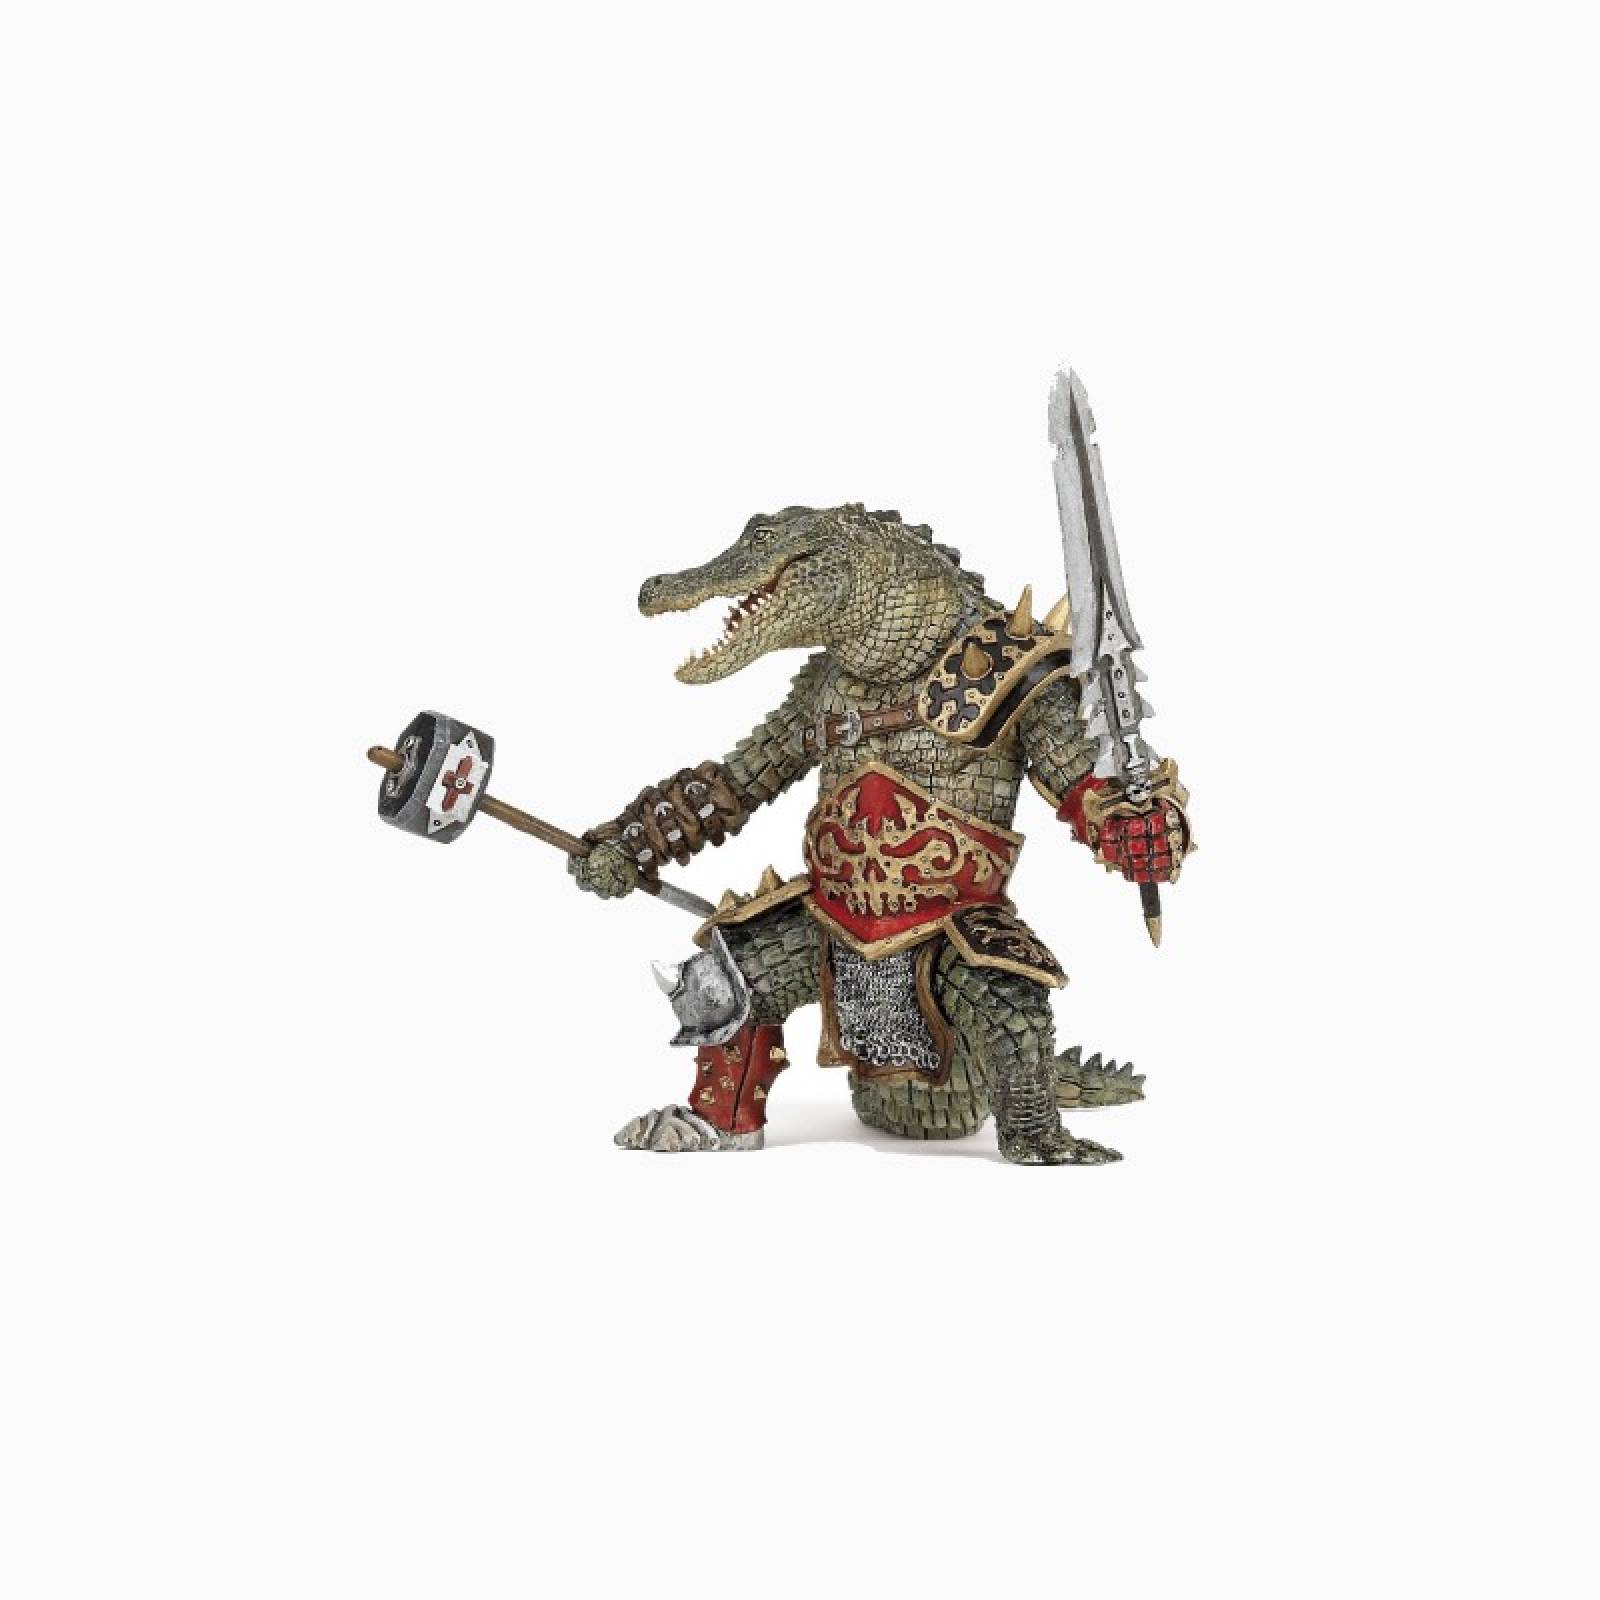 Crocodile Mutant Warrior - Papo Fantasy Figure